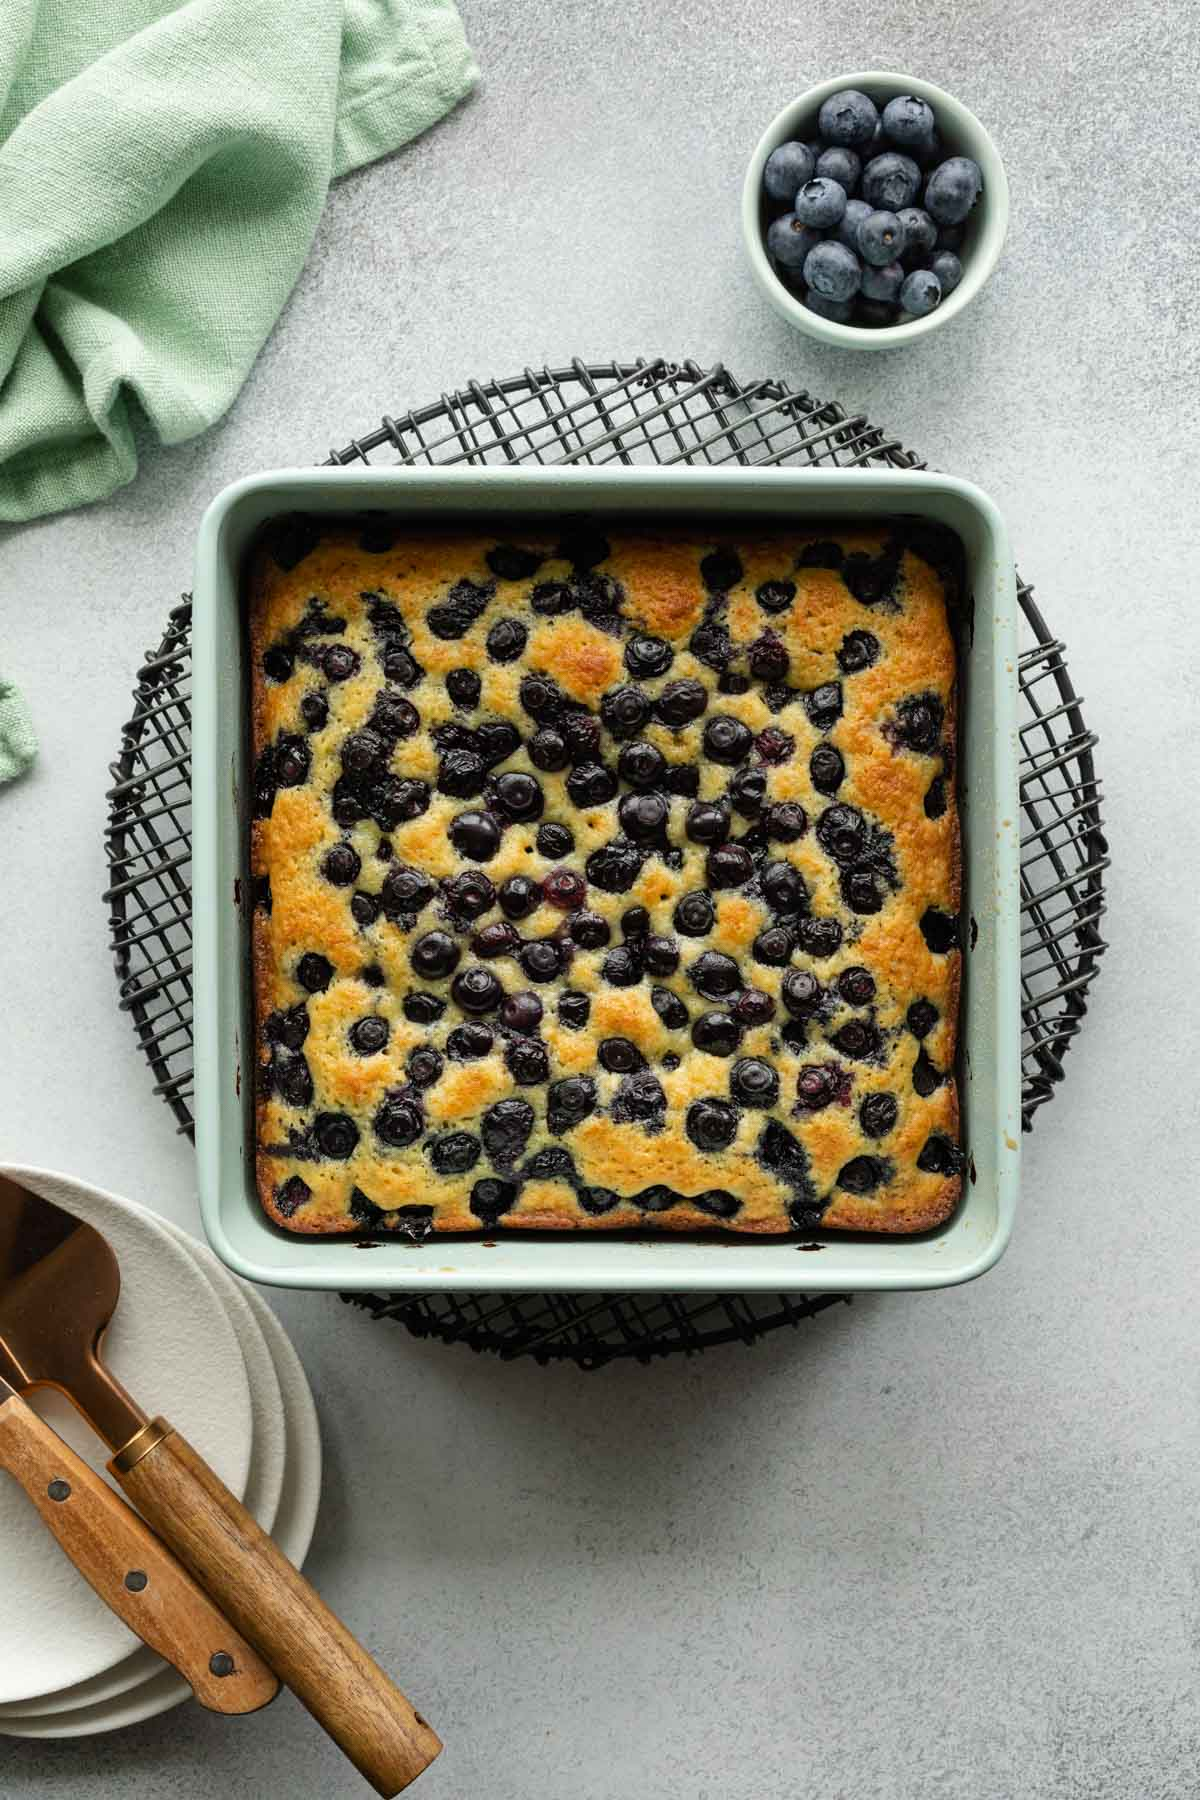 Overhead view of blueberry cake cooling on a wire rack.